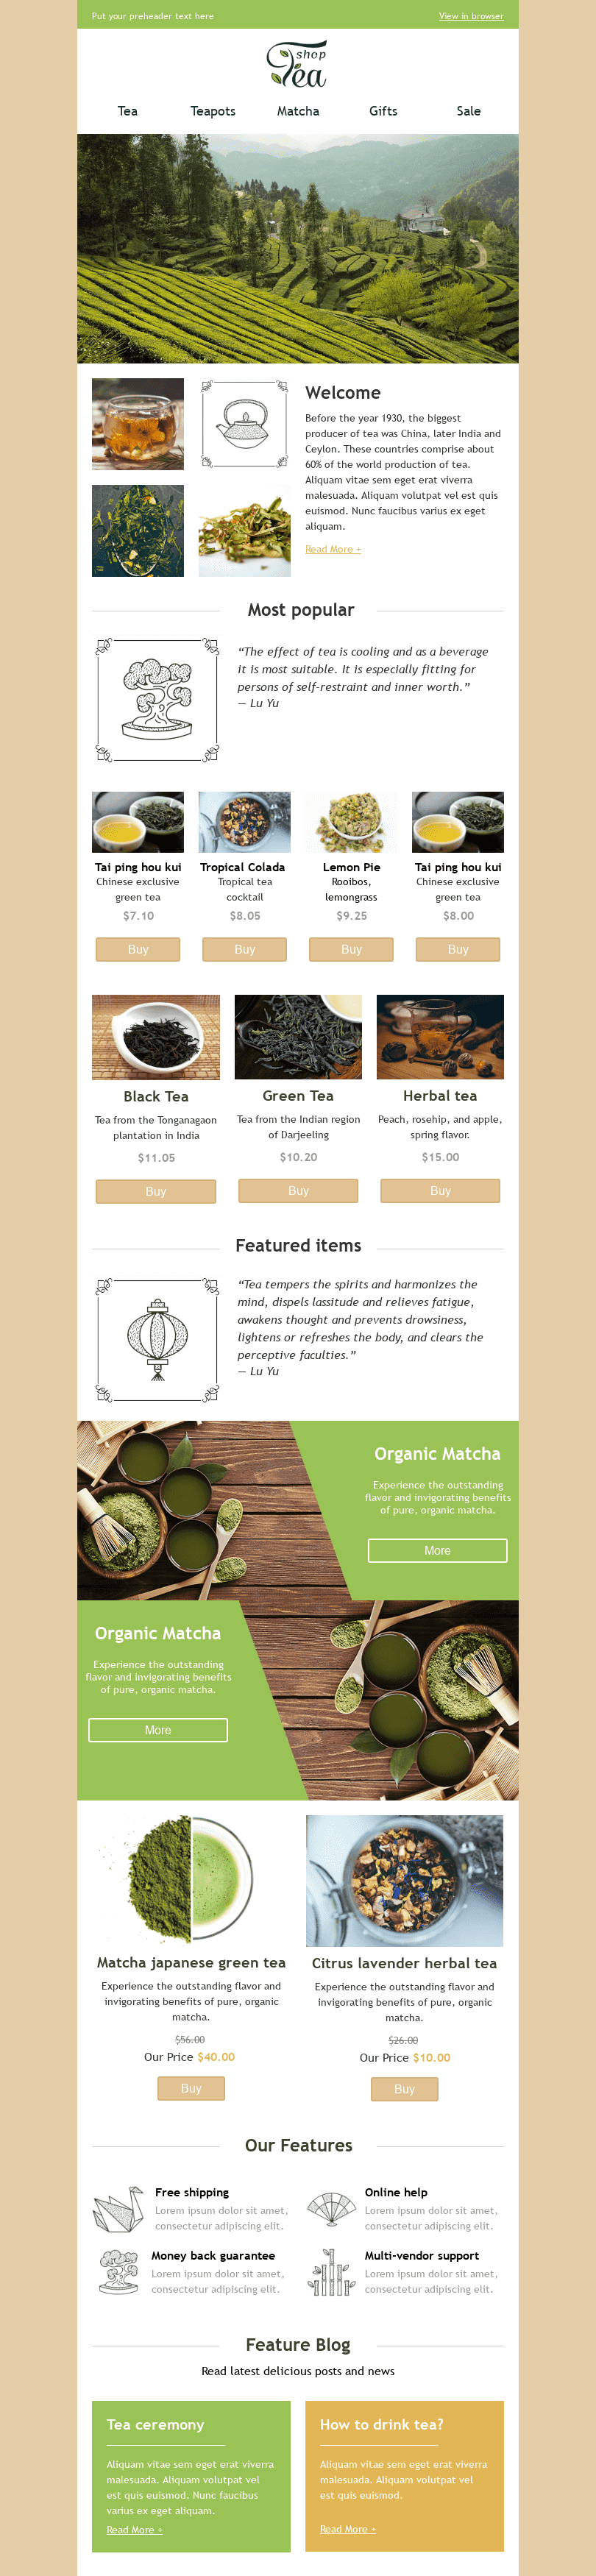 "Promo Email Template ""Tea Shop"" for Beverages industry desktop view"